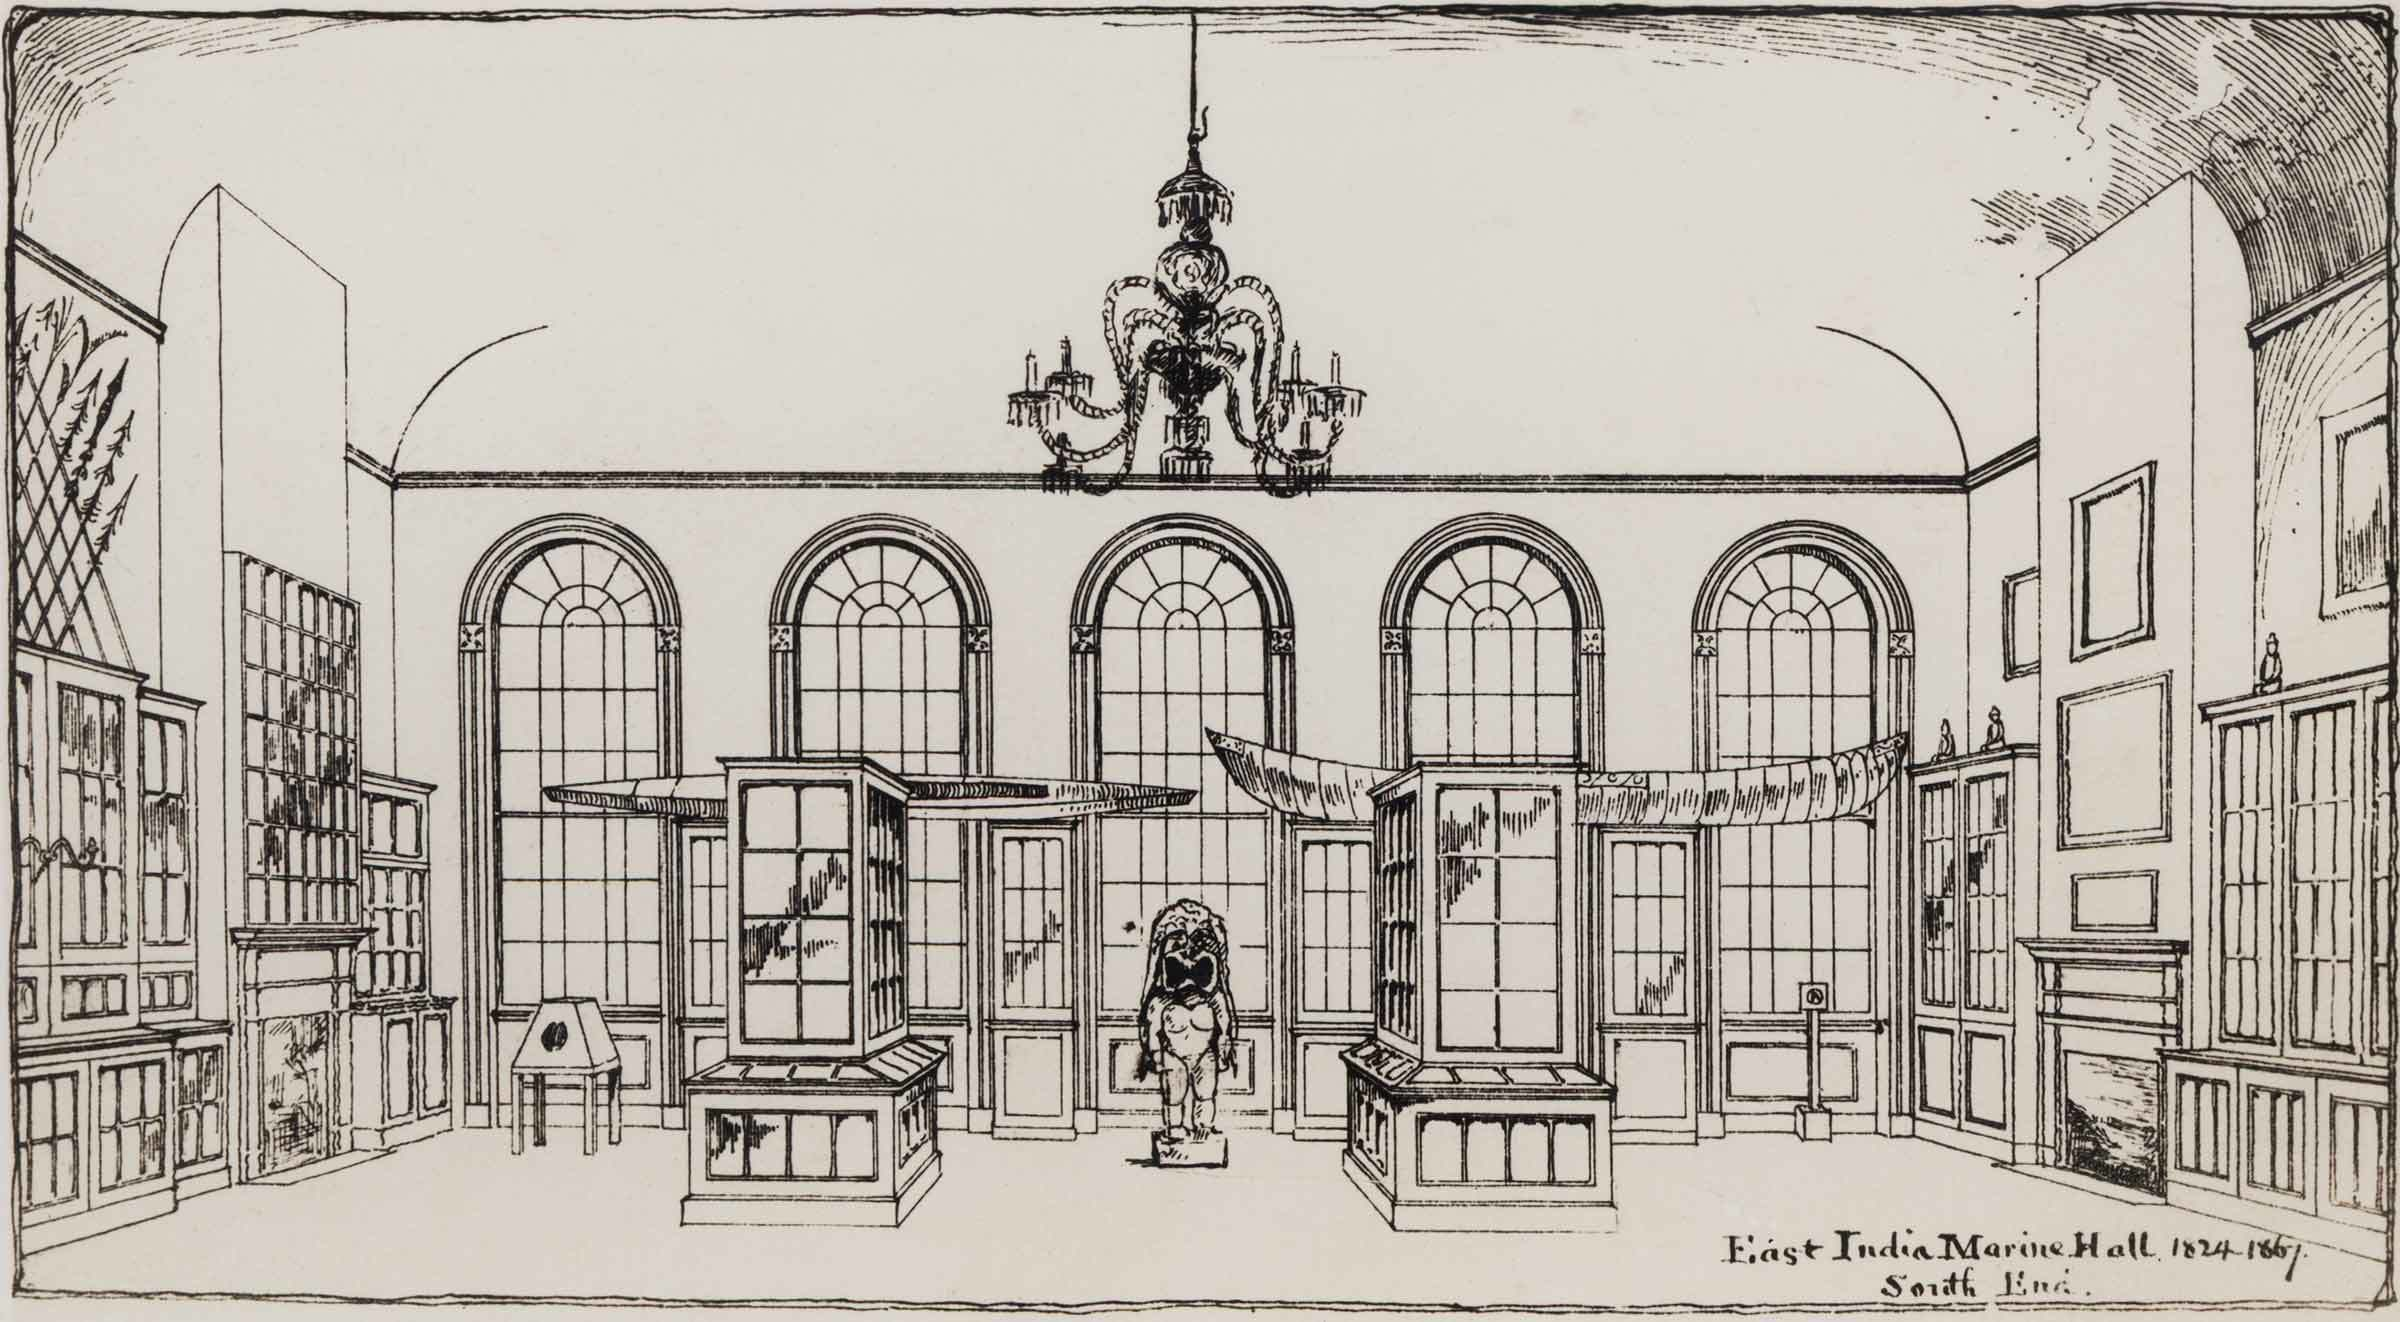 East India Marine Hall as it was arranged prior to 1867